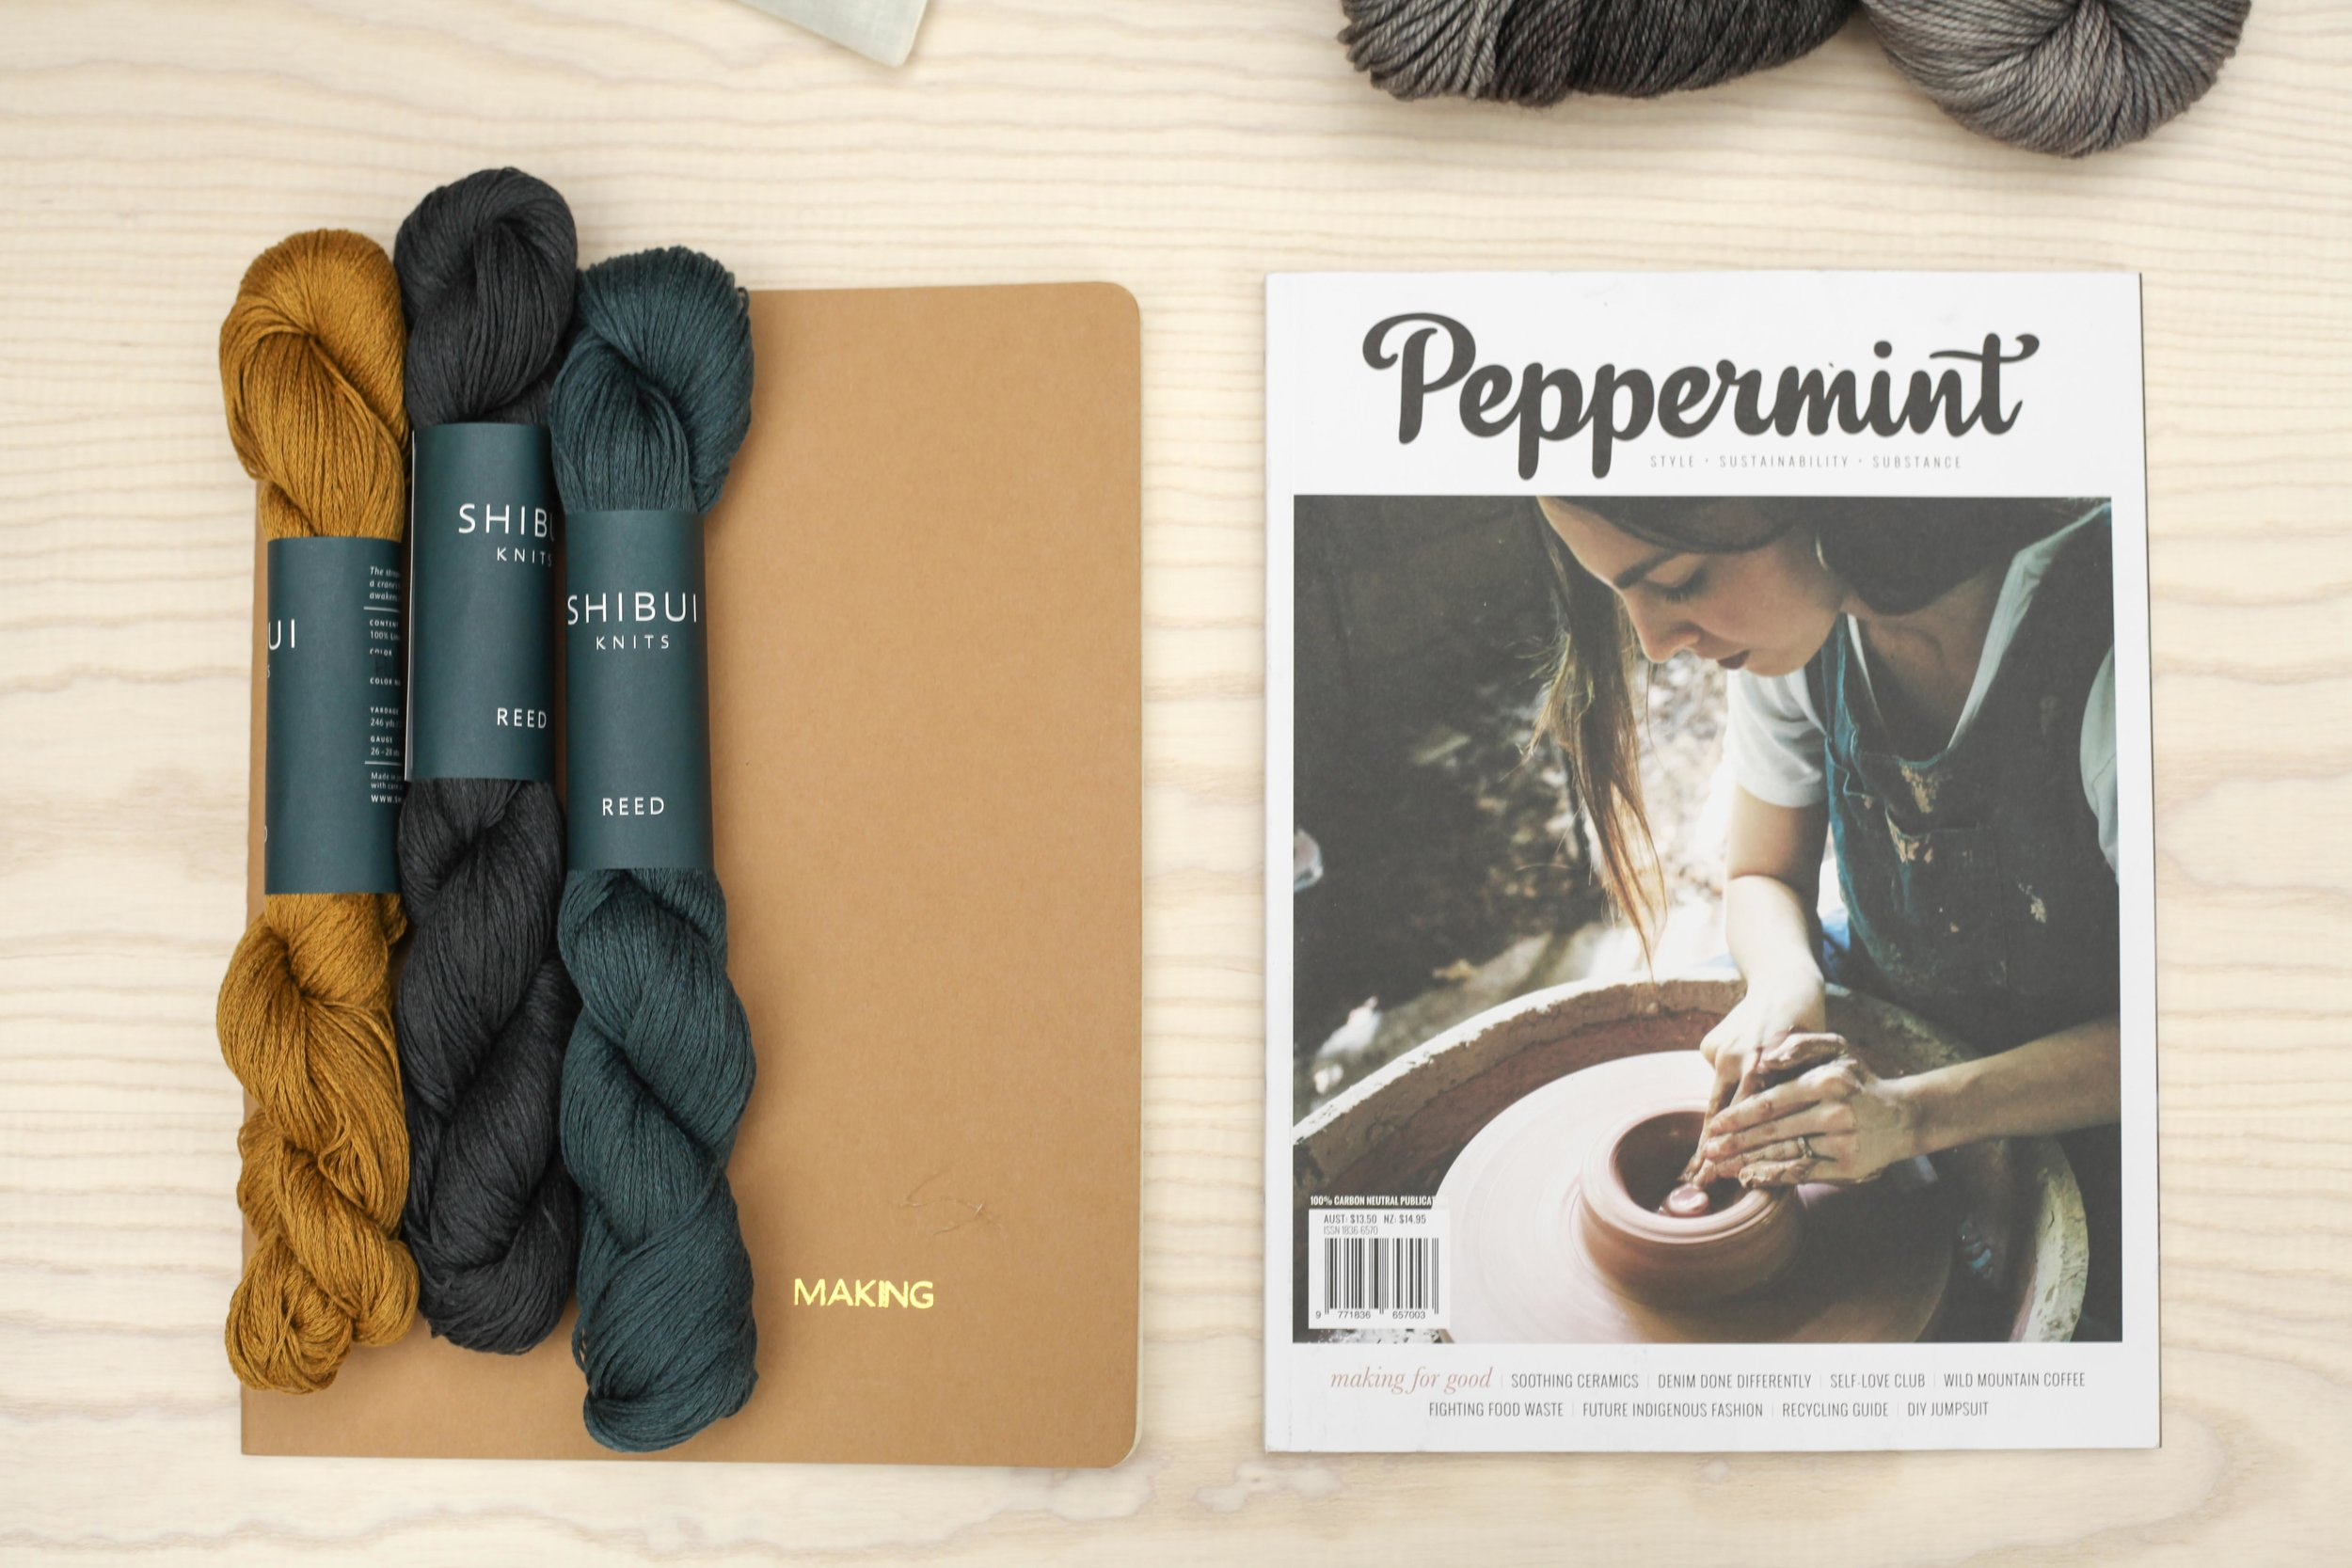 Special edition Moleskins from Notemaker and beautiful mags from Peppermint